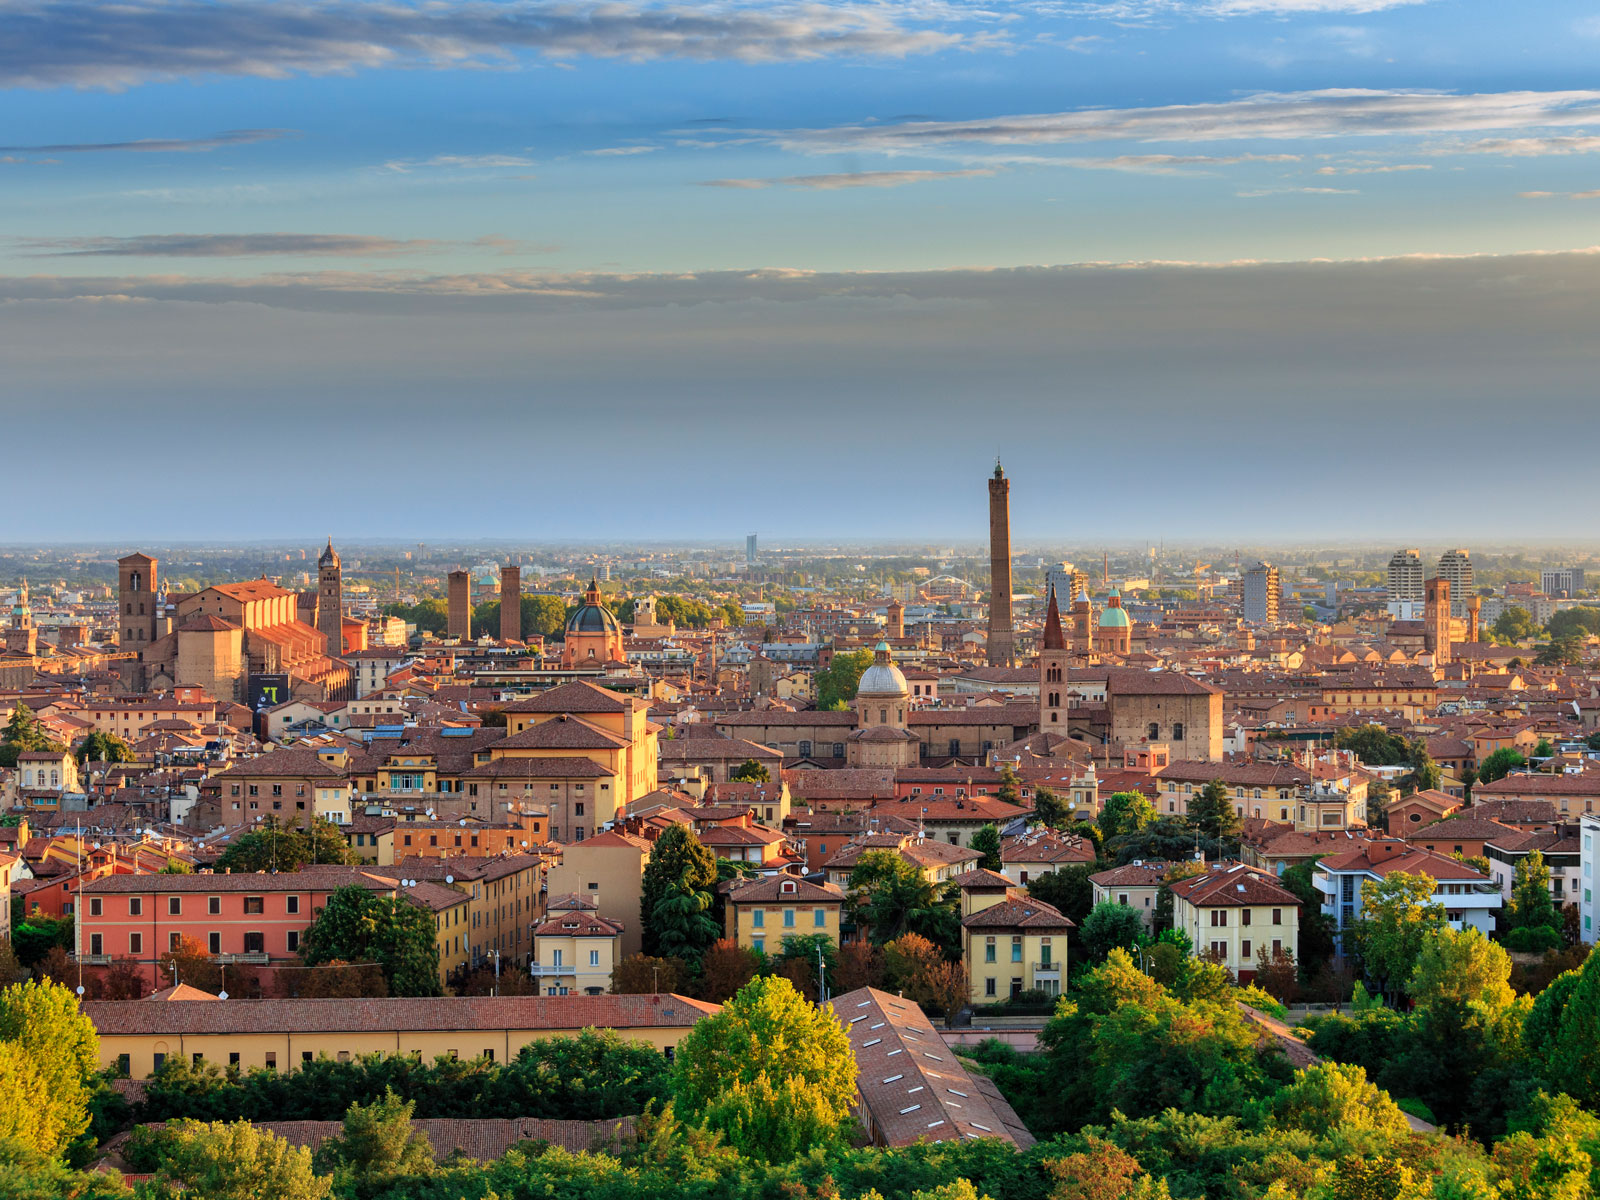 This Italian City Offers Free Beer and Gelato For Using Environmentally-Friendly Travel Options